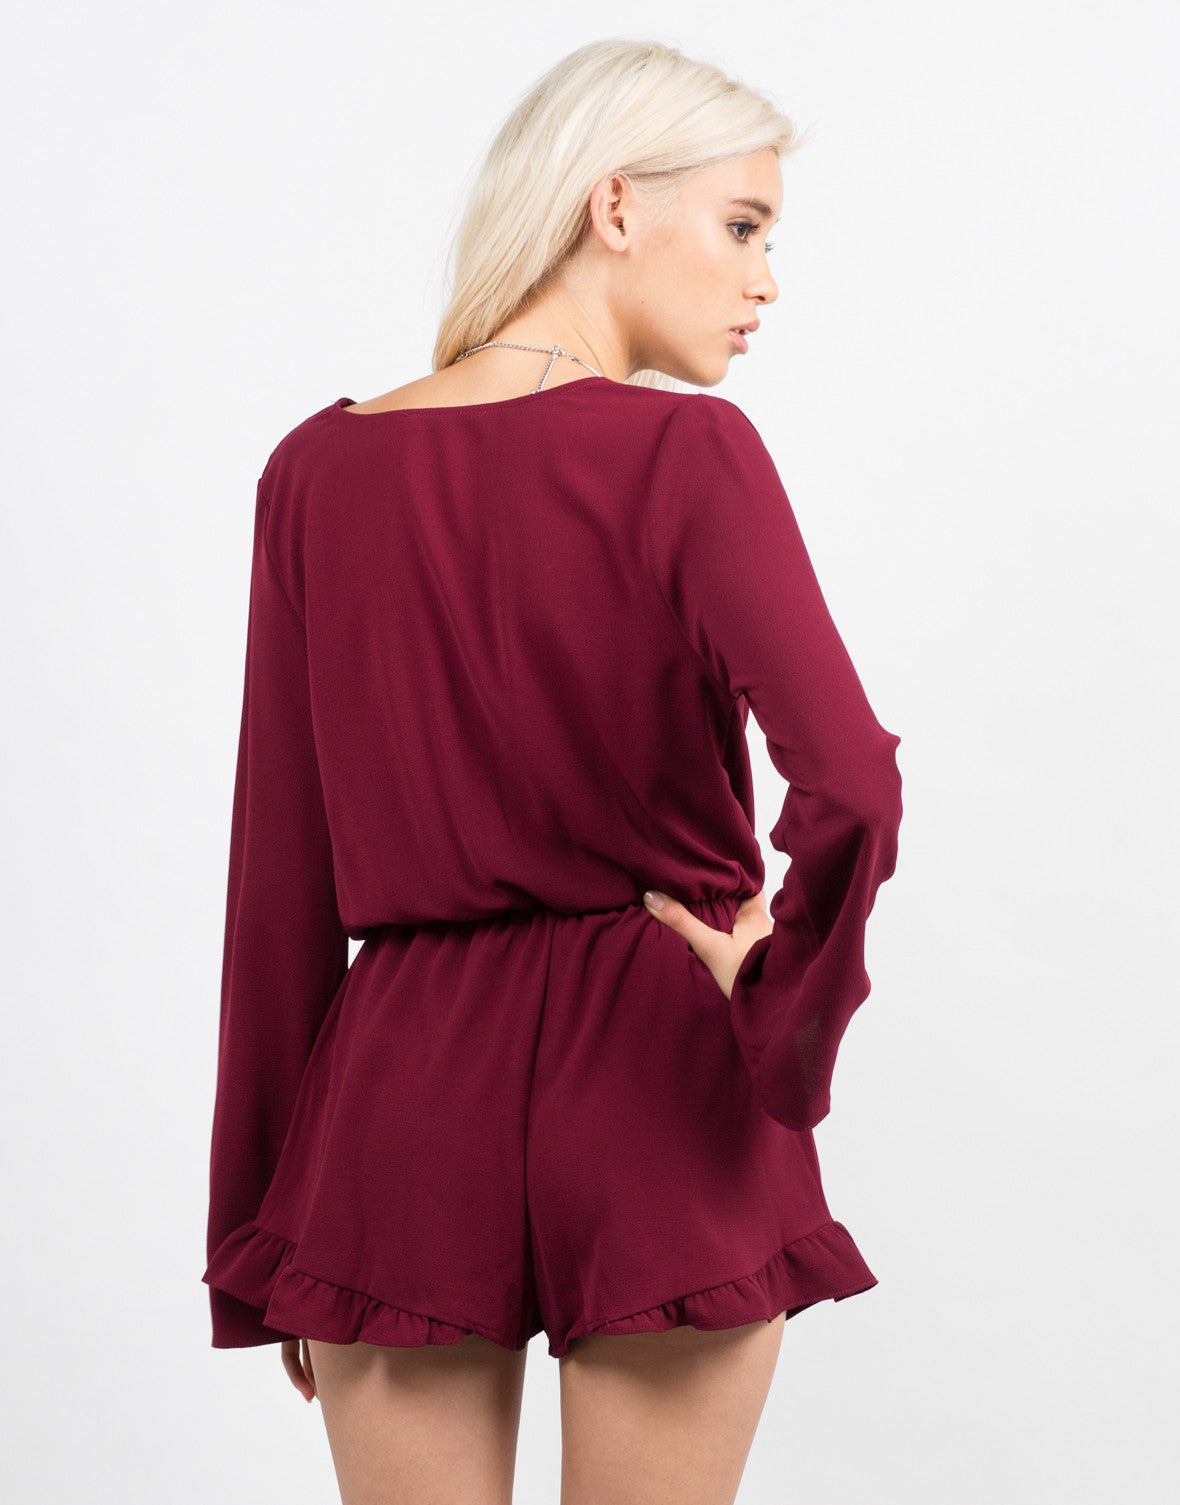 Back View of Bell Sleeve Chiffon Romper